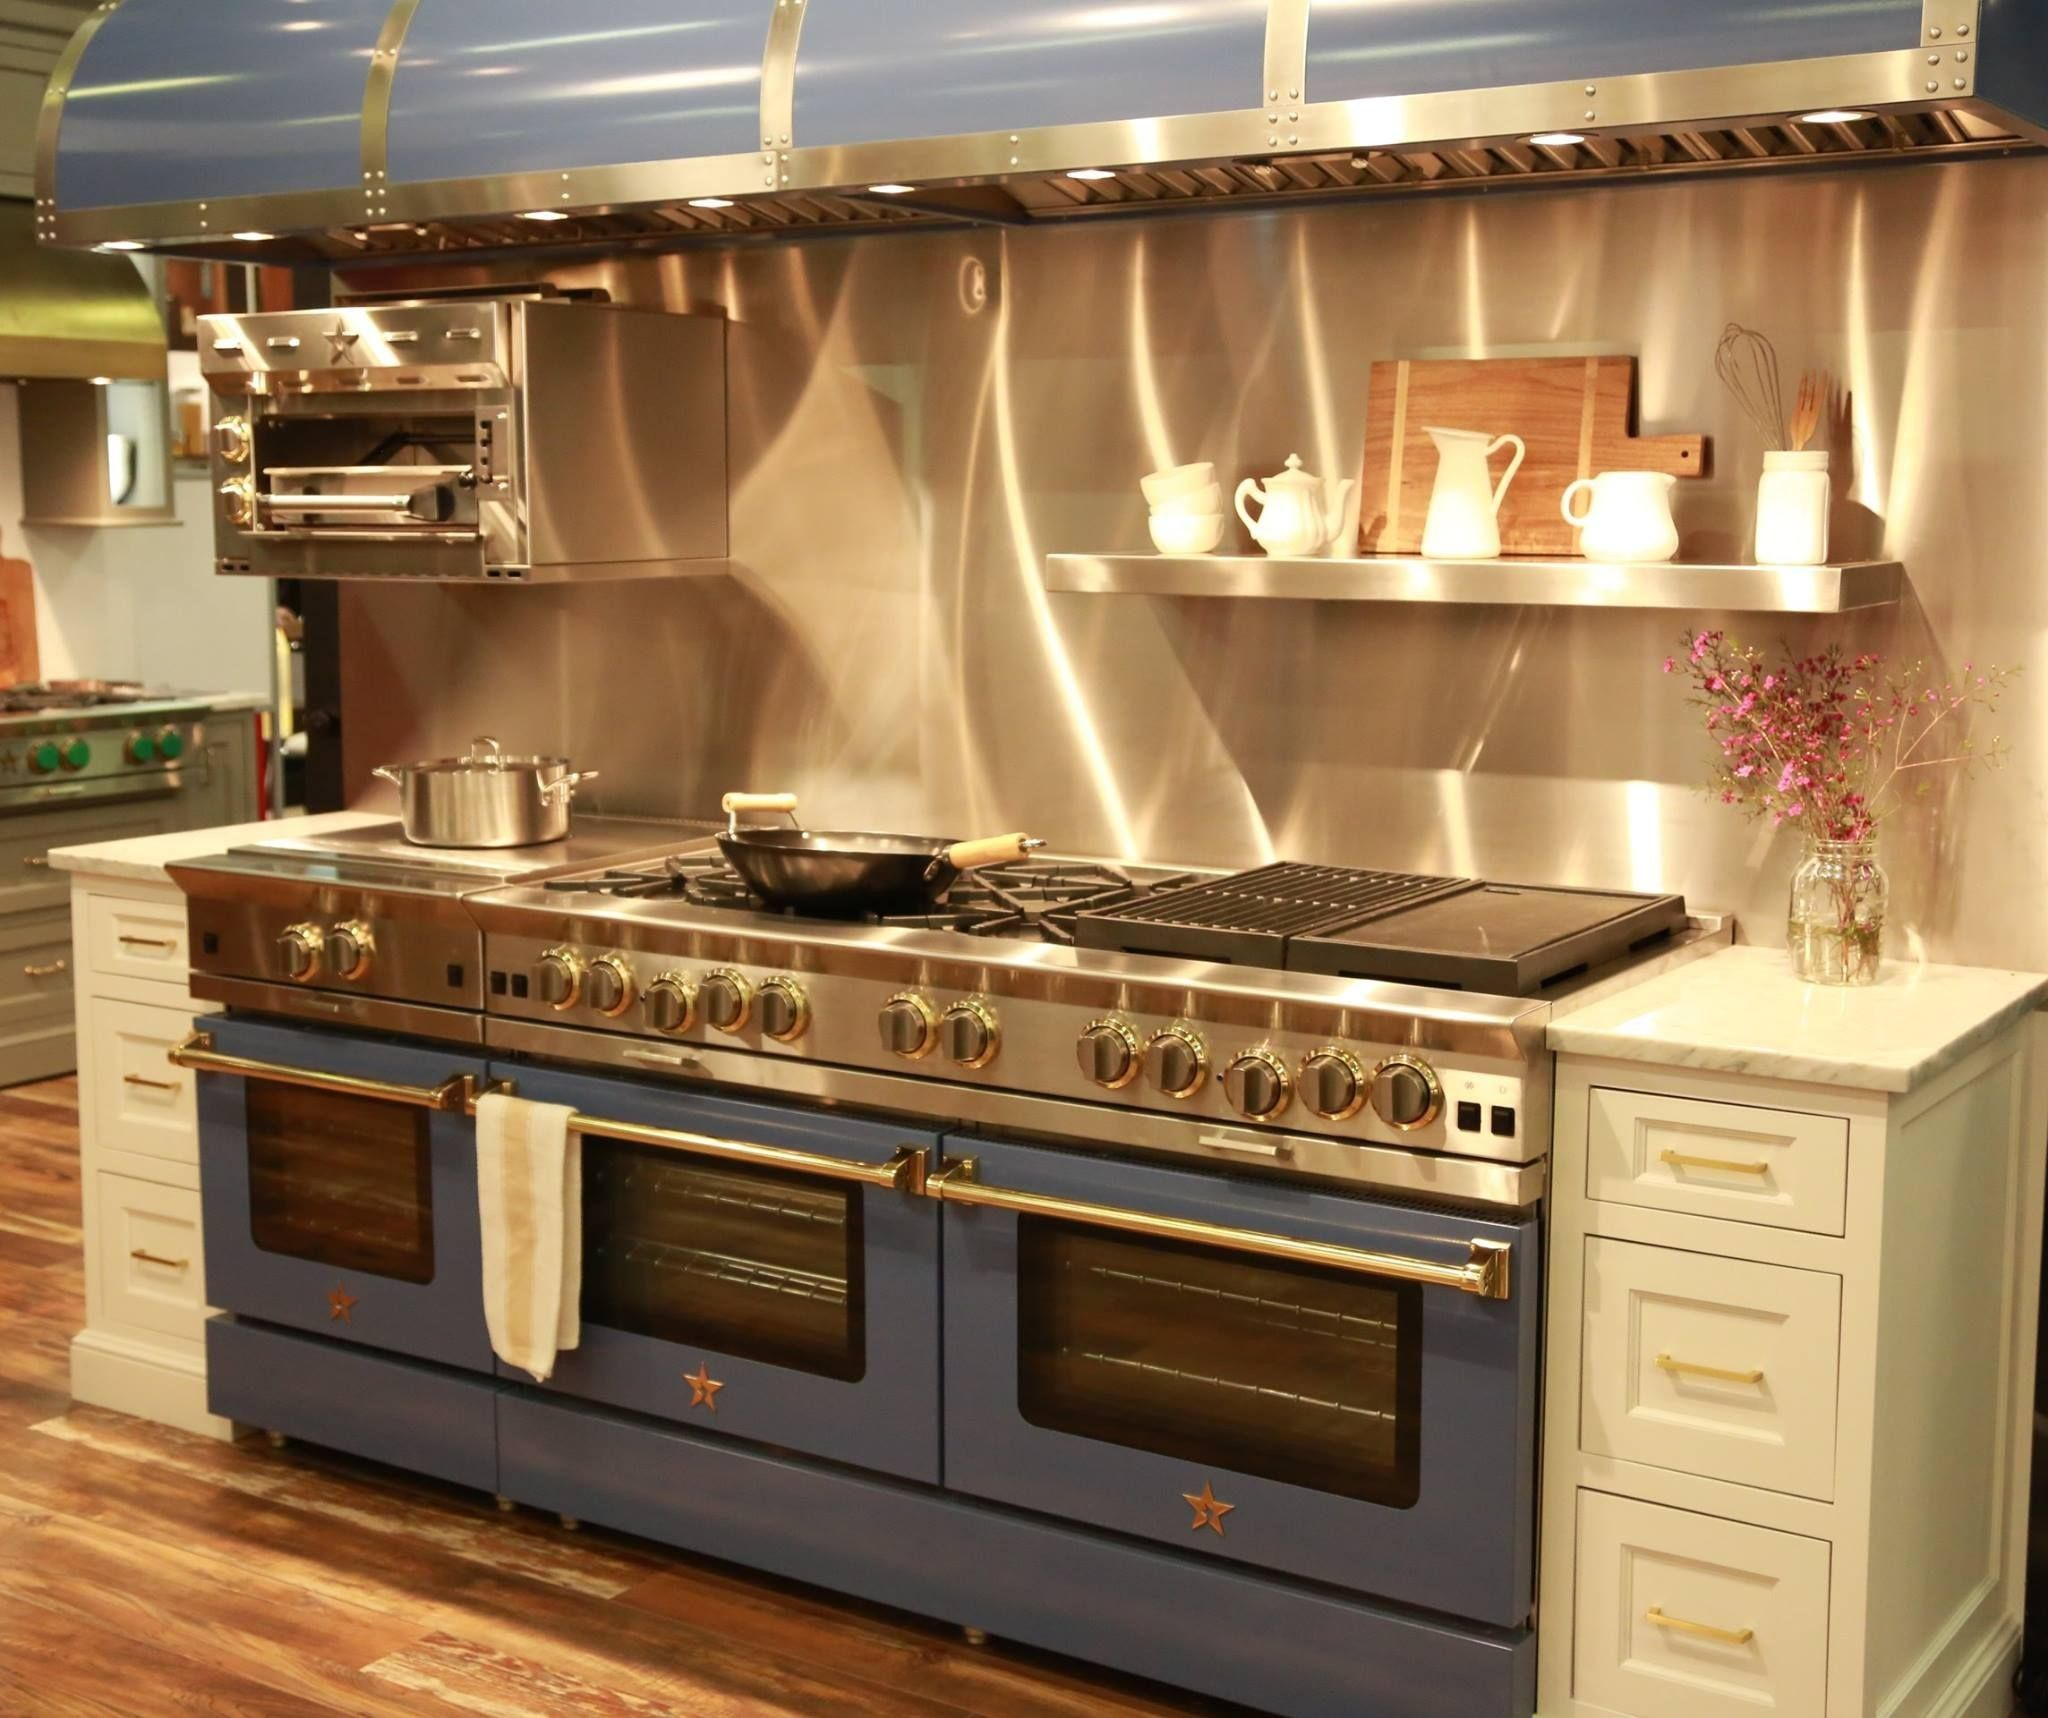 12 Reasons Why People Love Bluestar Range 36 48